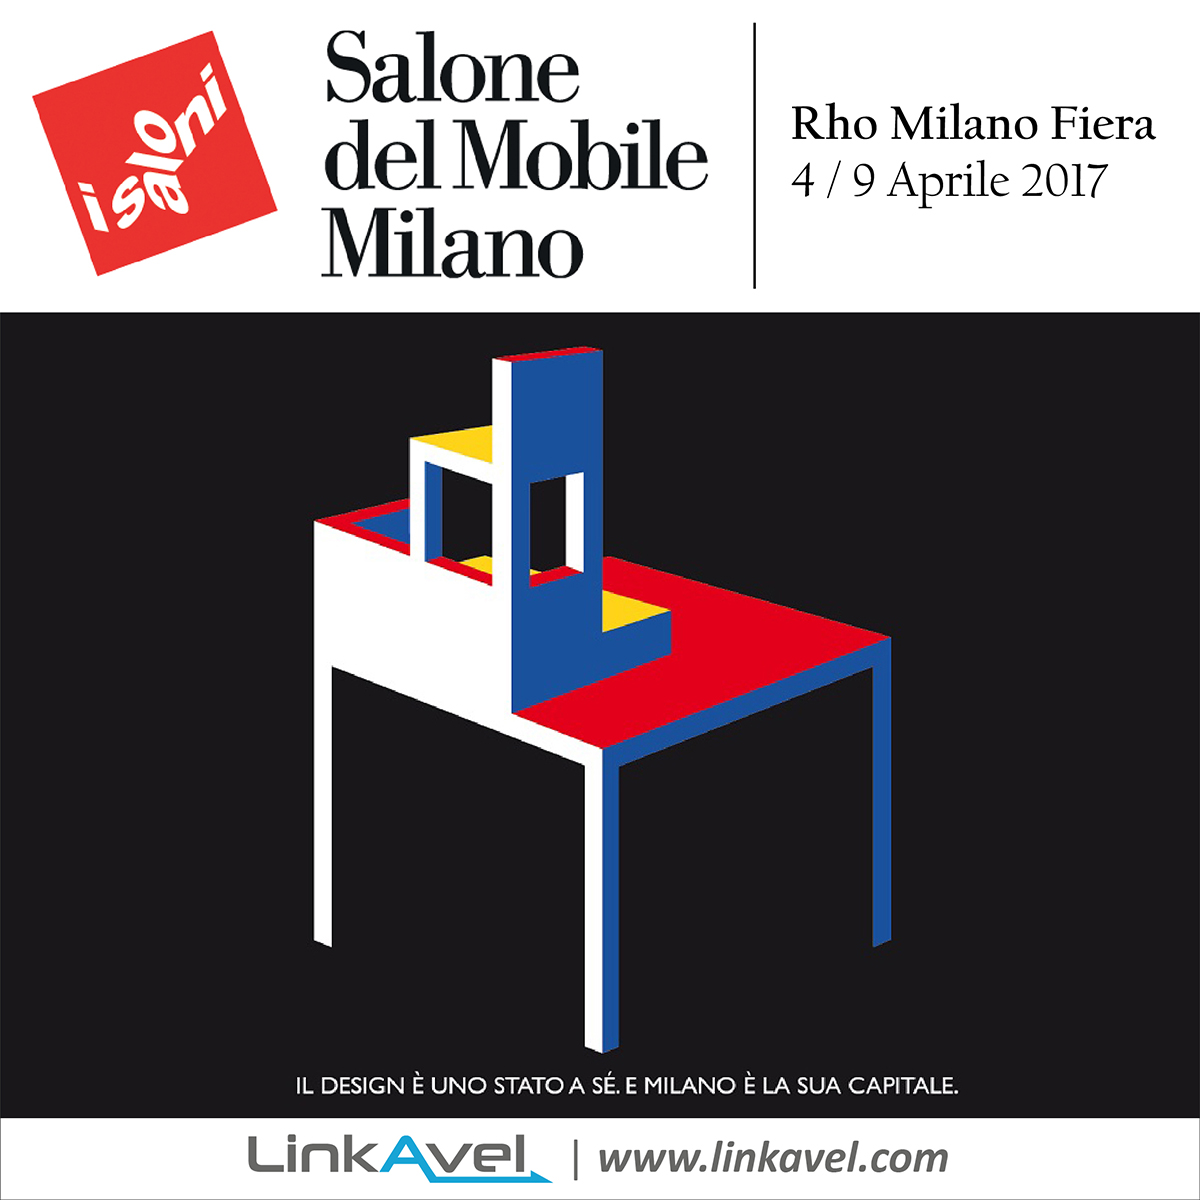 Salone del mobile milano 4 9 aprile 2017 linkavel for Fiera del mobile milano 2017